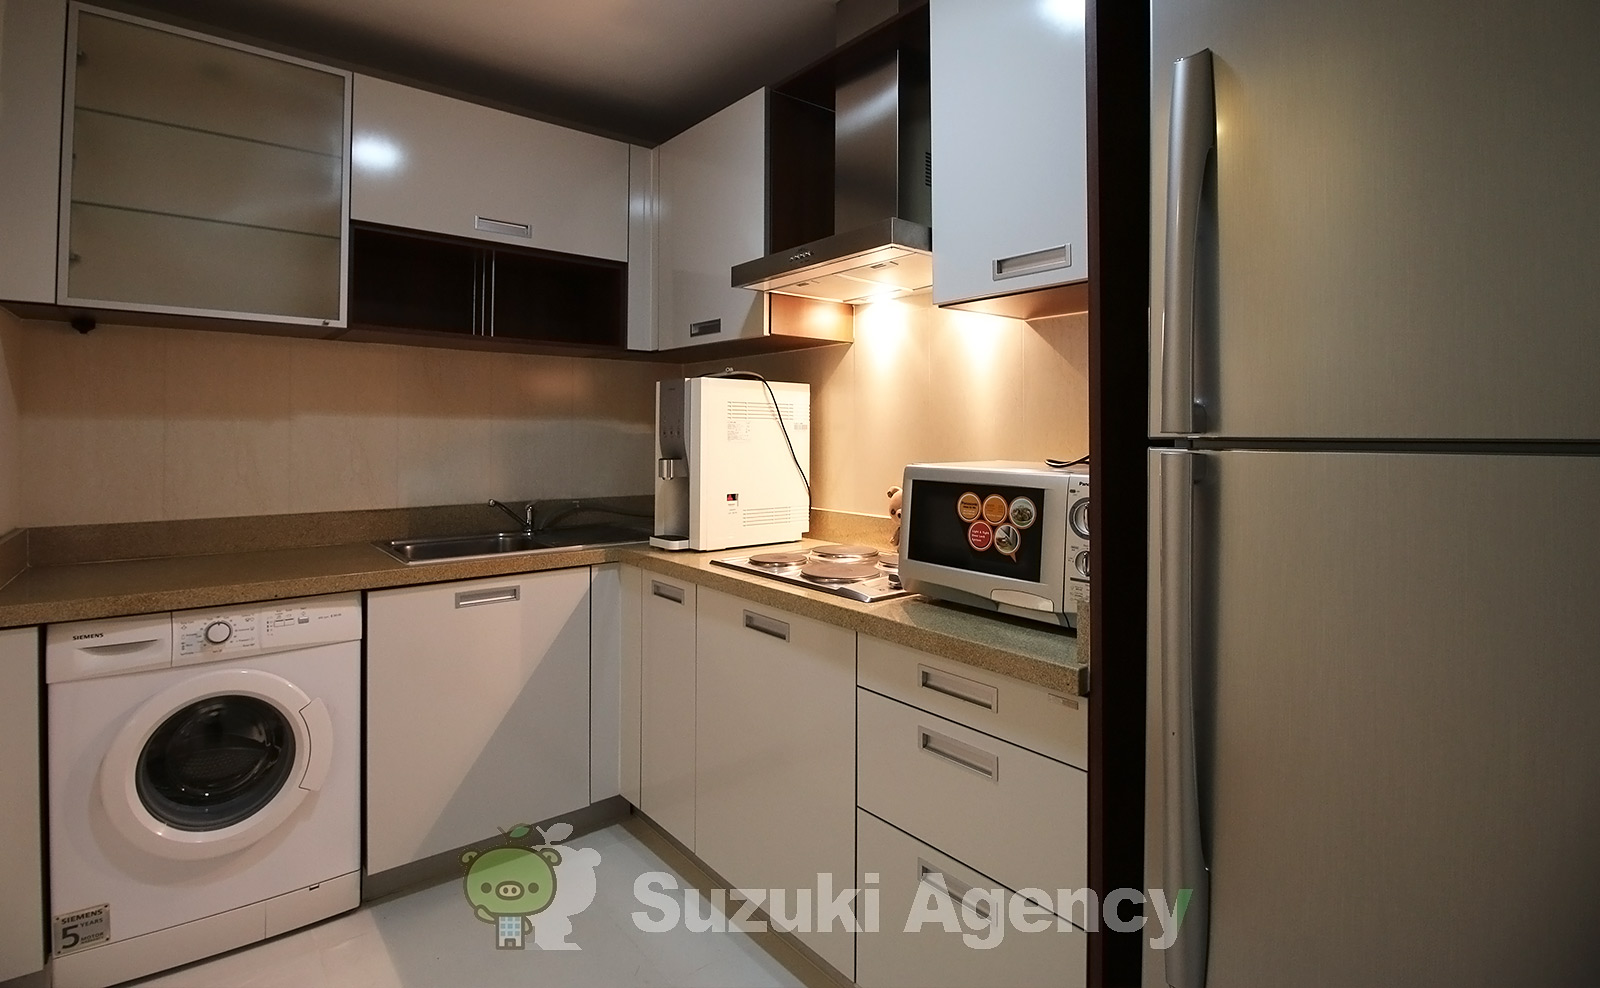 Prime Mansion Sukhumvit 31:2Bed Room Photos No.6